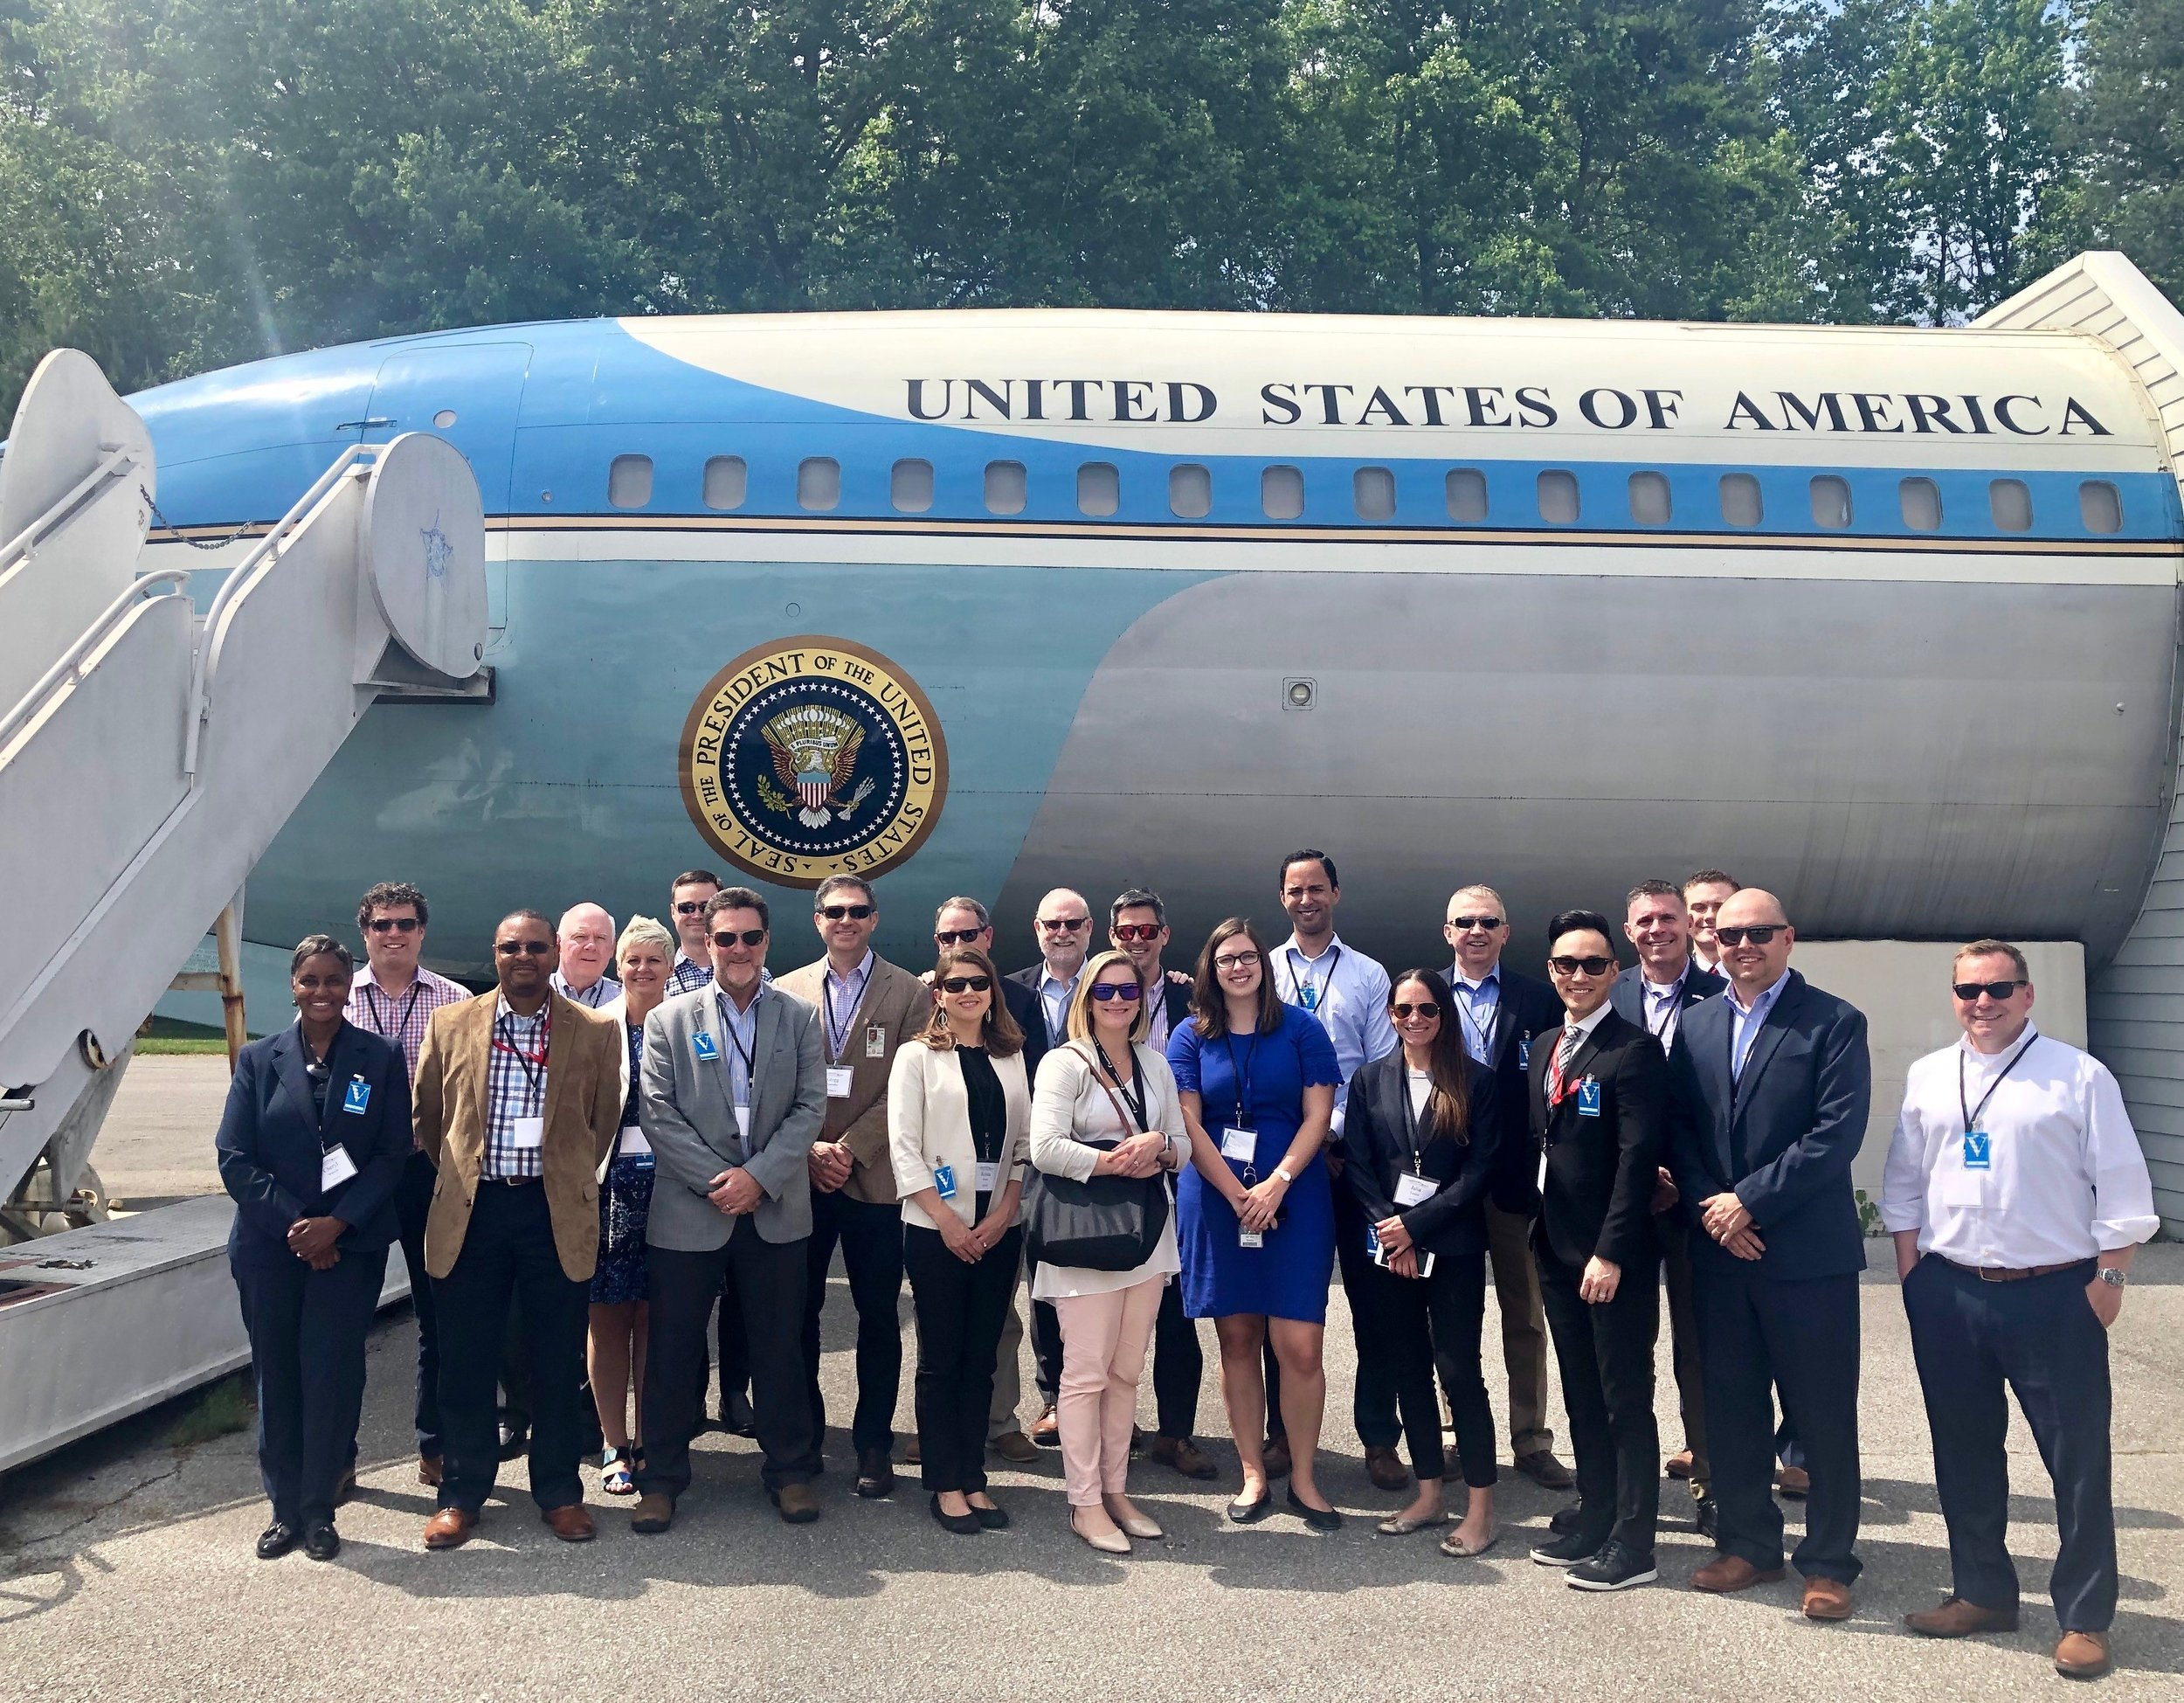 Executive Tour to the United States Secret Service James J. Rowley Training Center